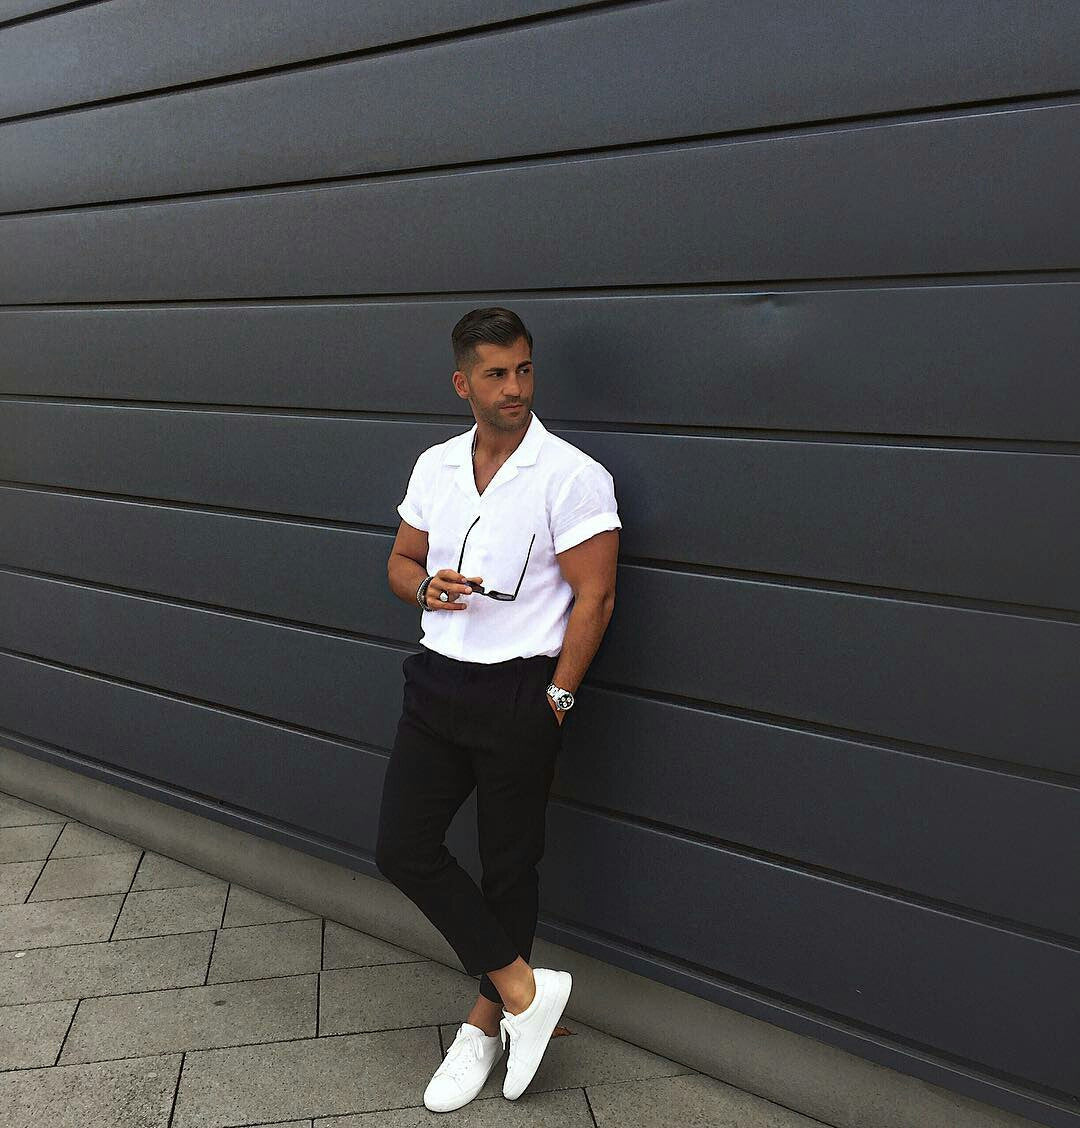 How to wear black and white outfit on the street 10 ideas lifestyle by ps